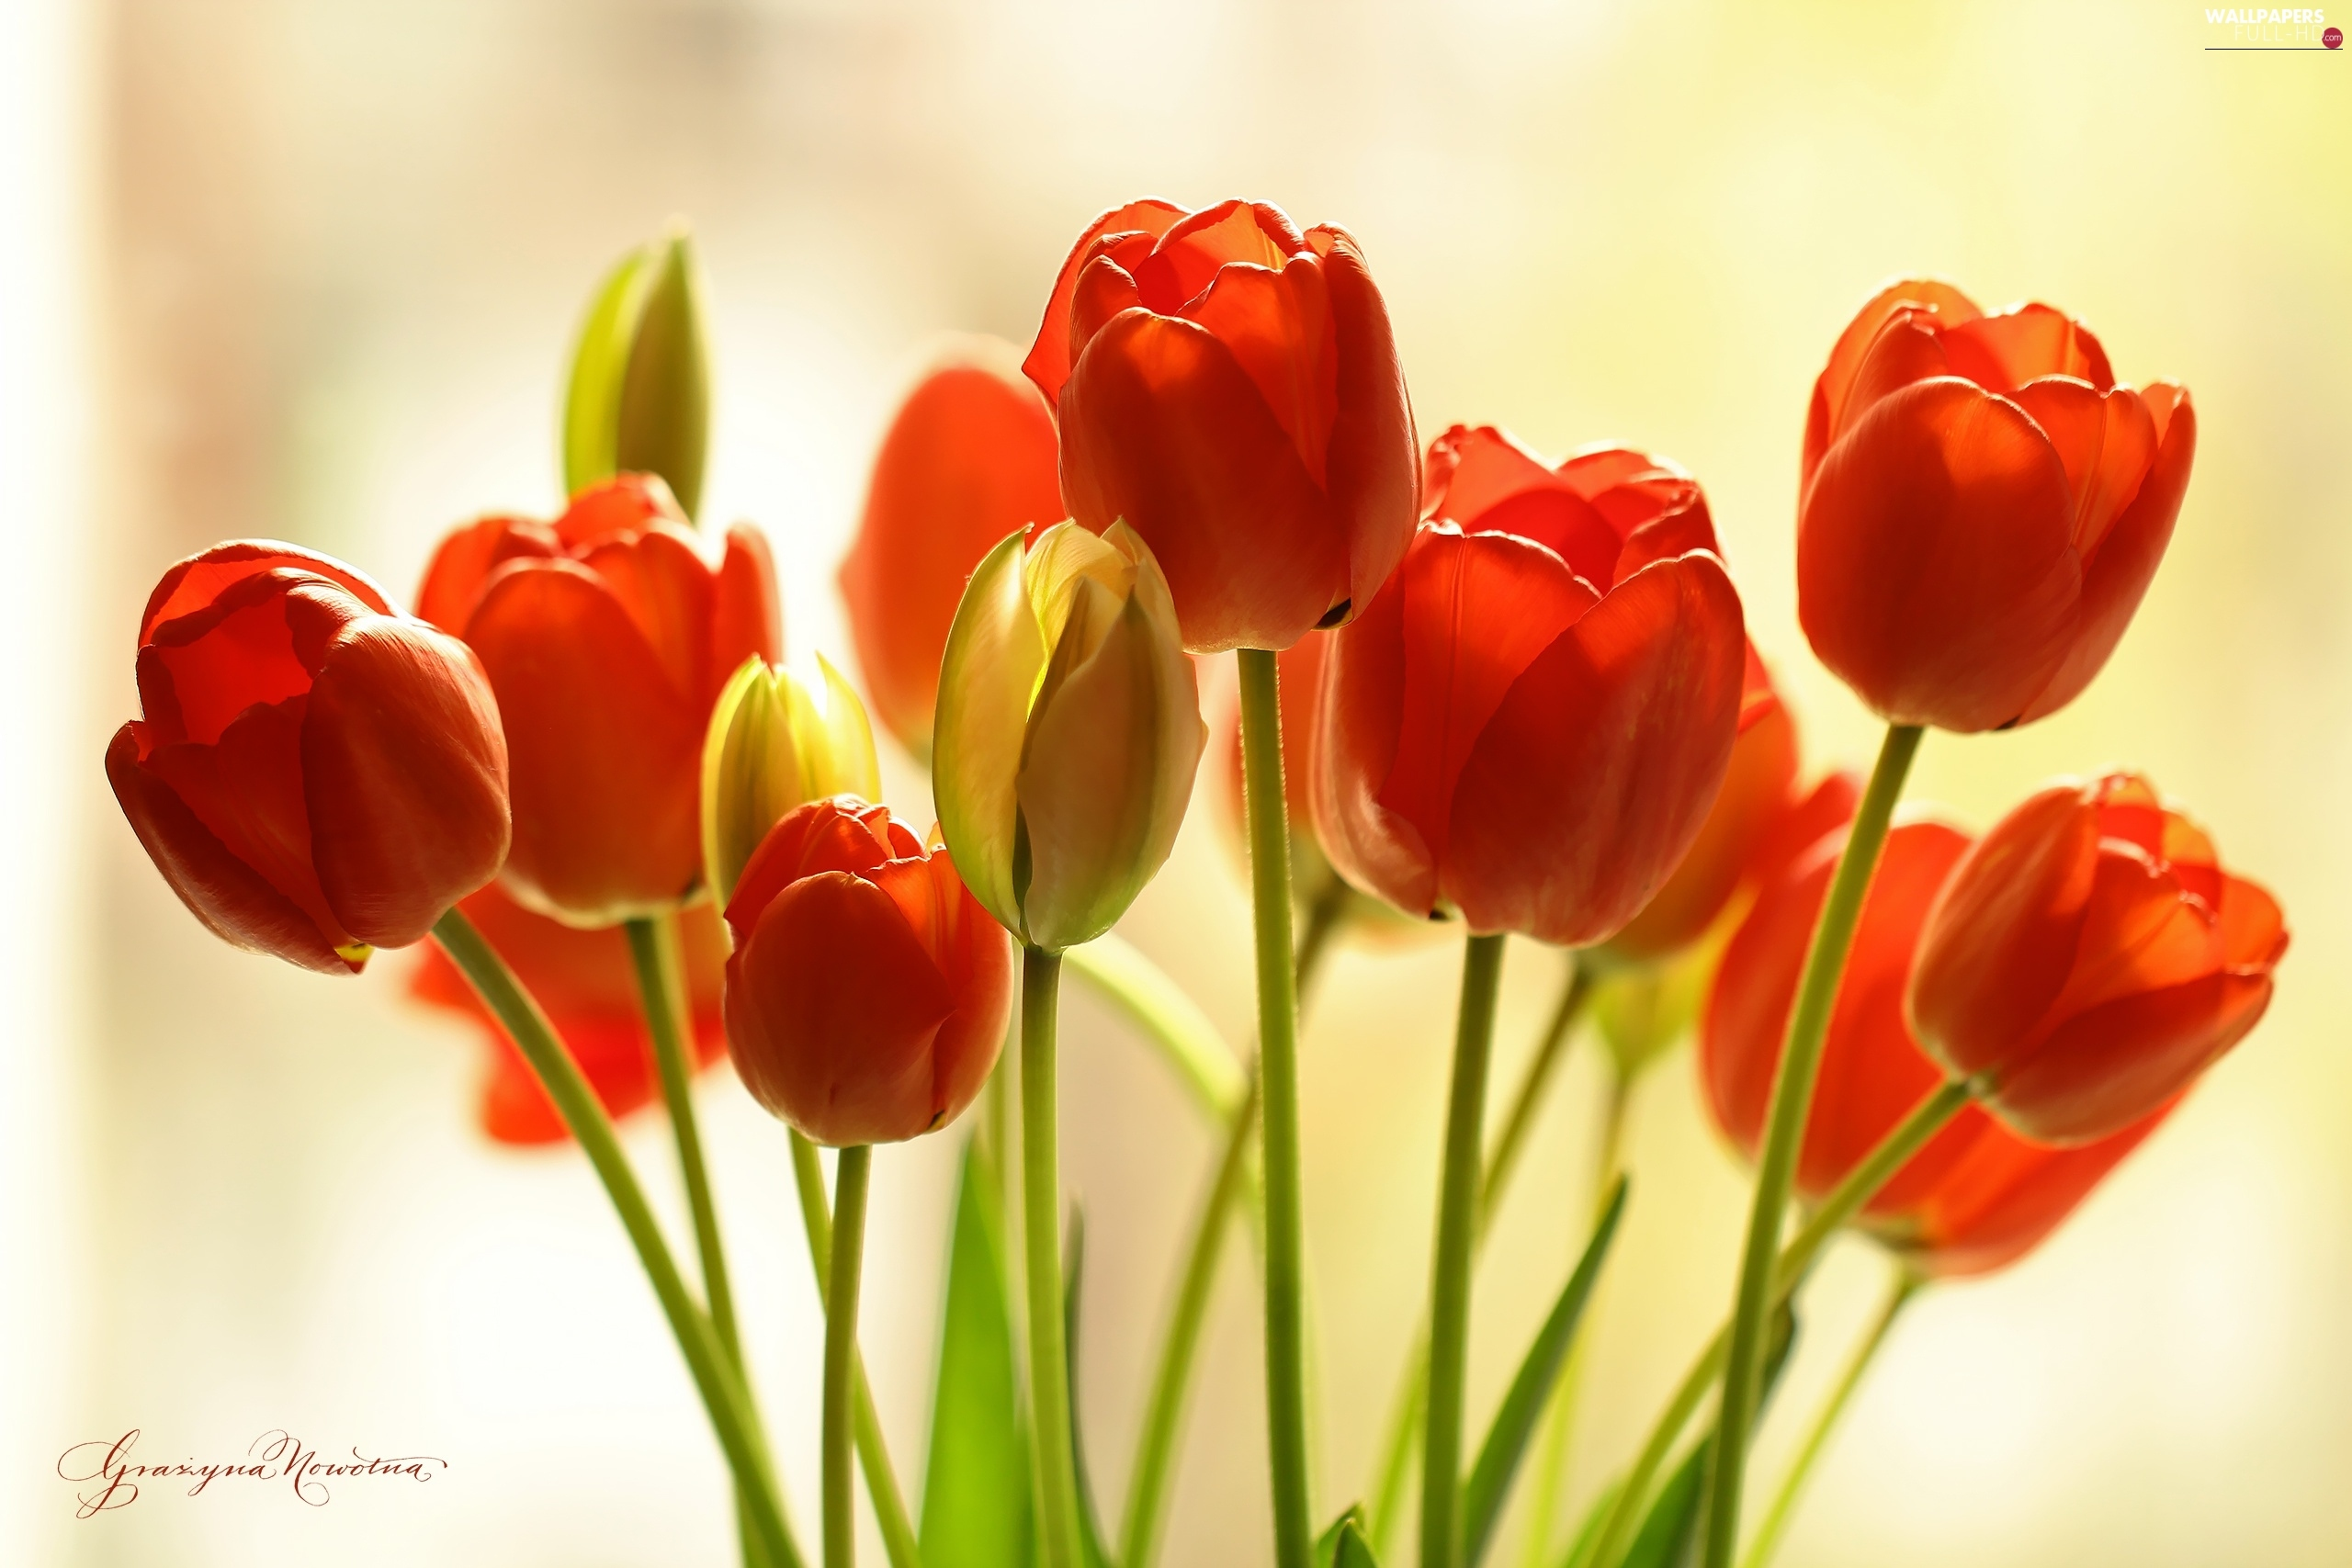 Tulips, Flowers, Red